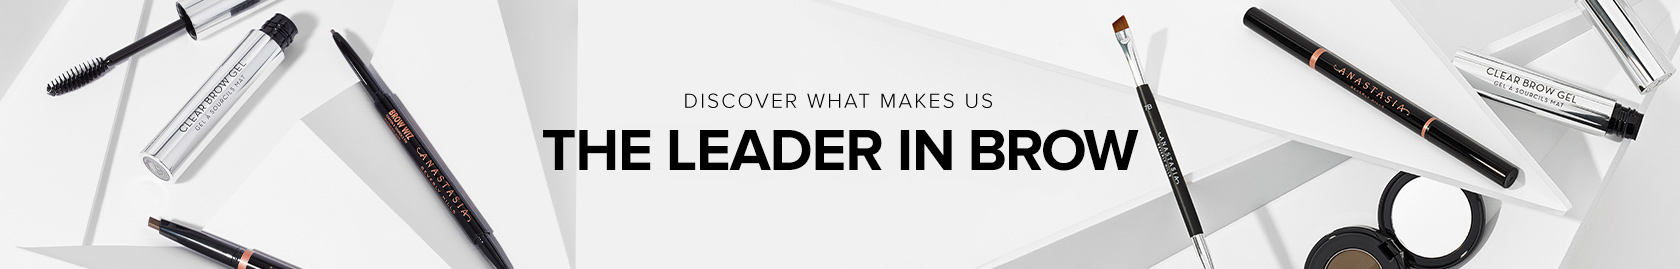 Discover What Makes Us the Leader in Brow Brand